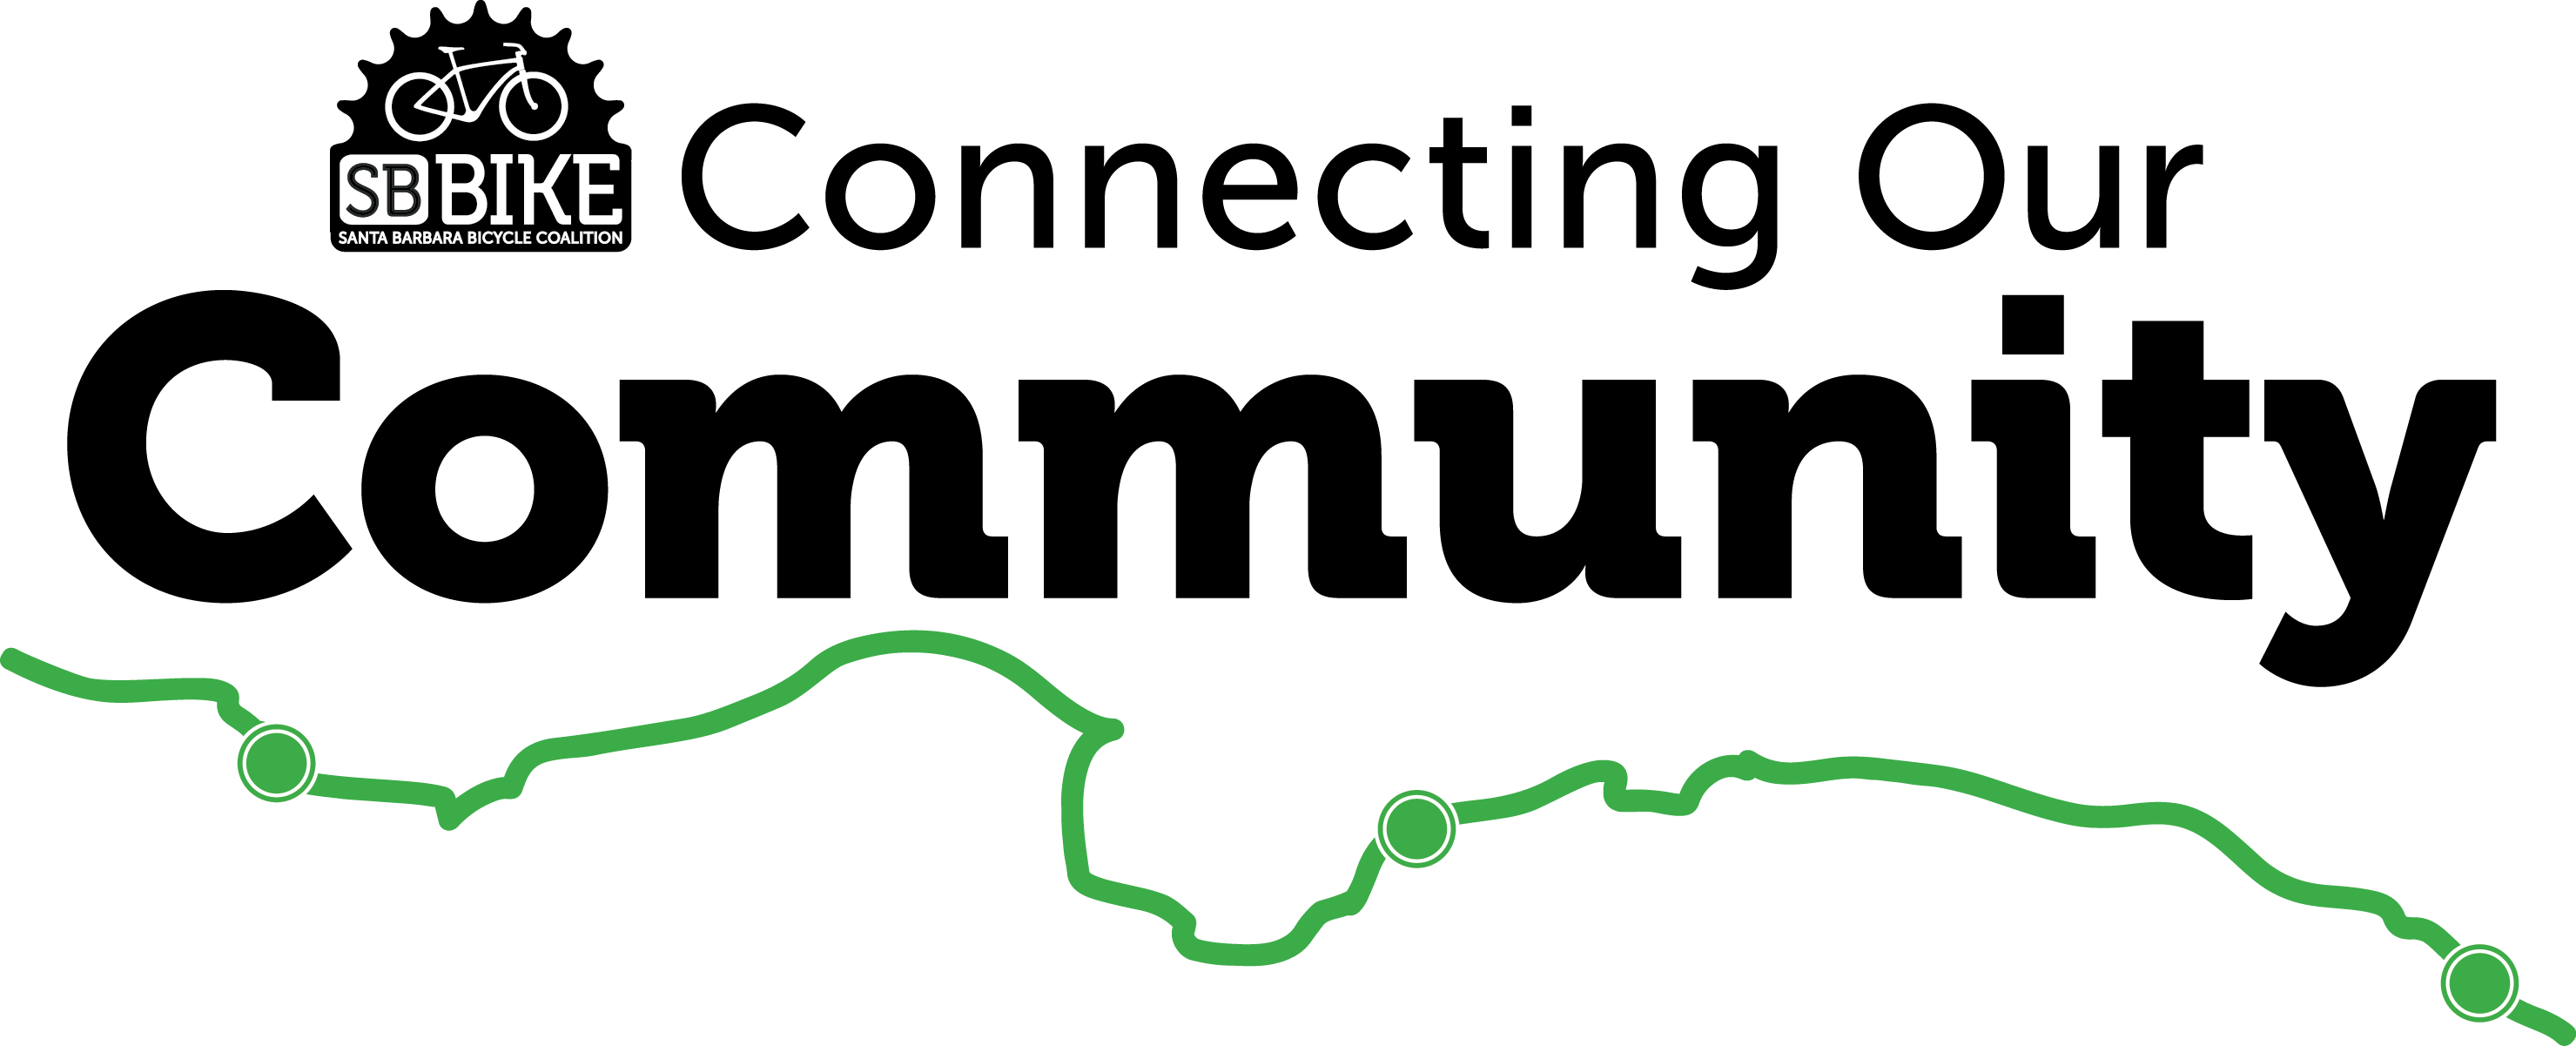 Connectlogo.png